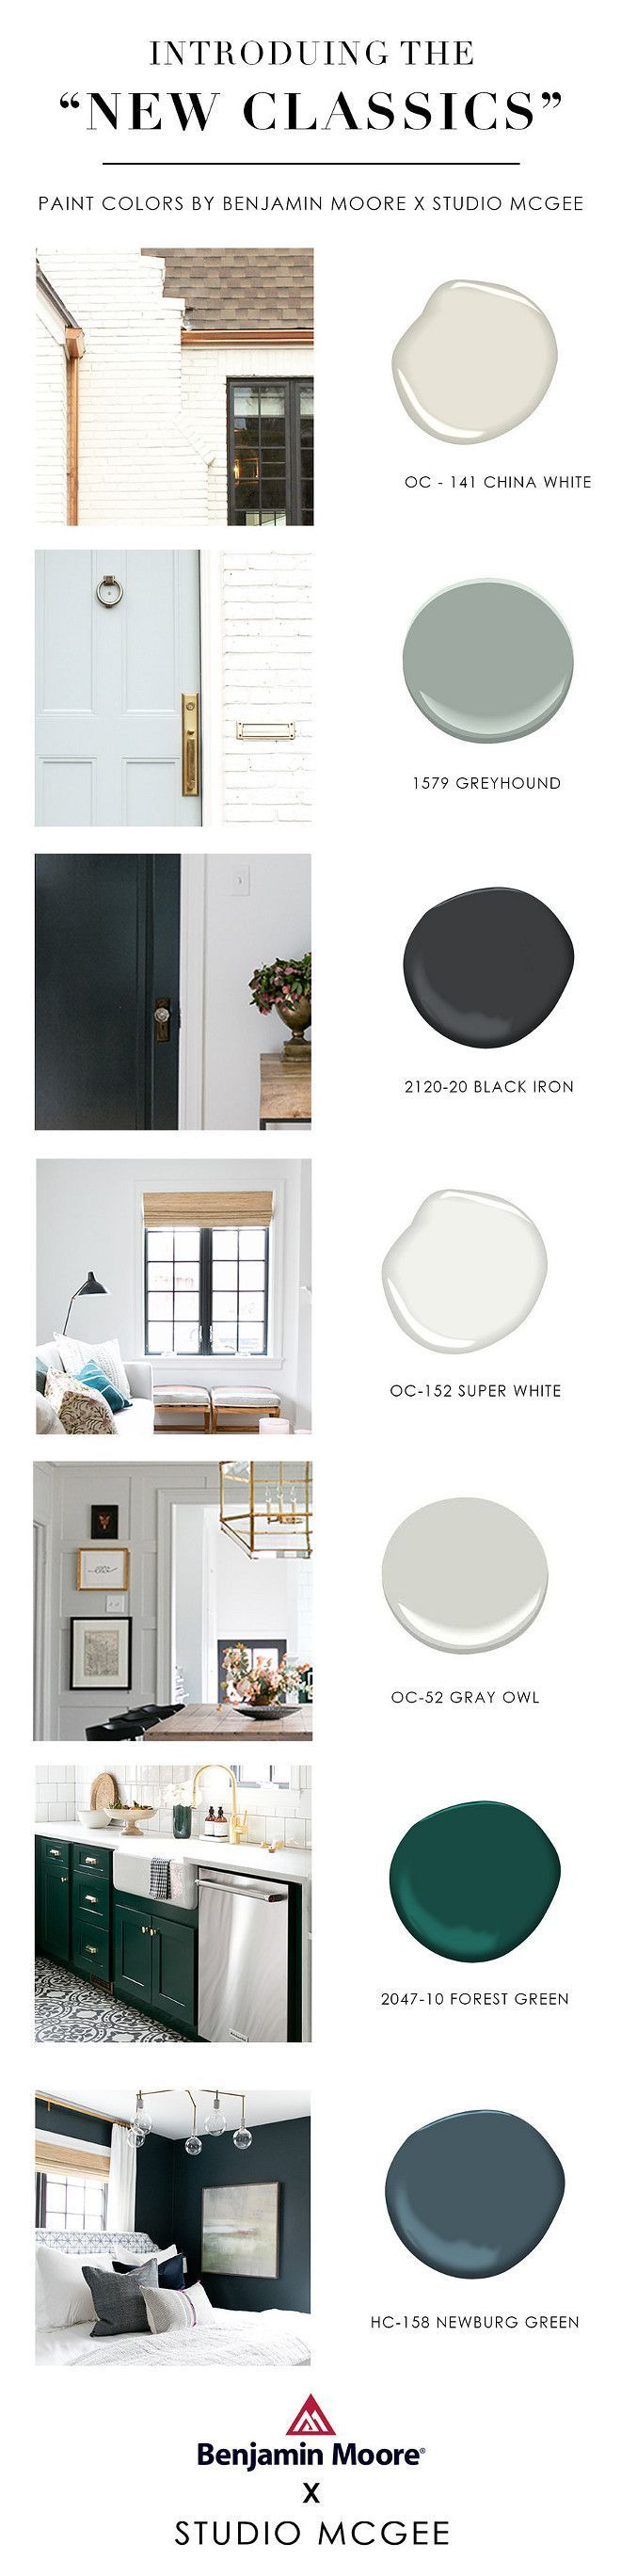 Coventry New Benjamin Moore Paint Colors. New Classic Benjamin Moore Paint Colors Benjamin Moore OC-141 China White. Benjamin Moore 1579 Greyhound. Benjamin Moore 2120-20 Black Iron. Benjamin Moore OC-152 Super White. Benjamin Moore OC-52 Gray Owl. Benjamin Moore 2047-10 Forest Green. Benjamin Moore HC-158 Newburg Green #BenjaminMooreOC141ChinaWhite #BenjaminMoore1579Greyhound #BenjaminMooreBlackIron #BenjaminMooreOC152SuperWhite #BenjaminMooreOC52GrayOwl #BenjaminMooreForestGreen…